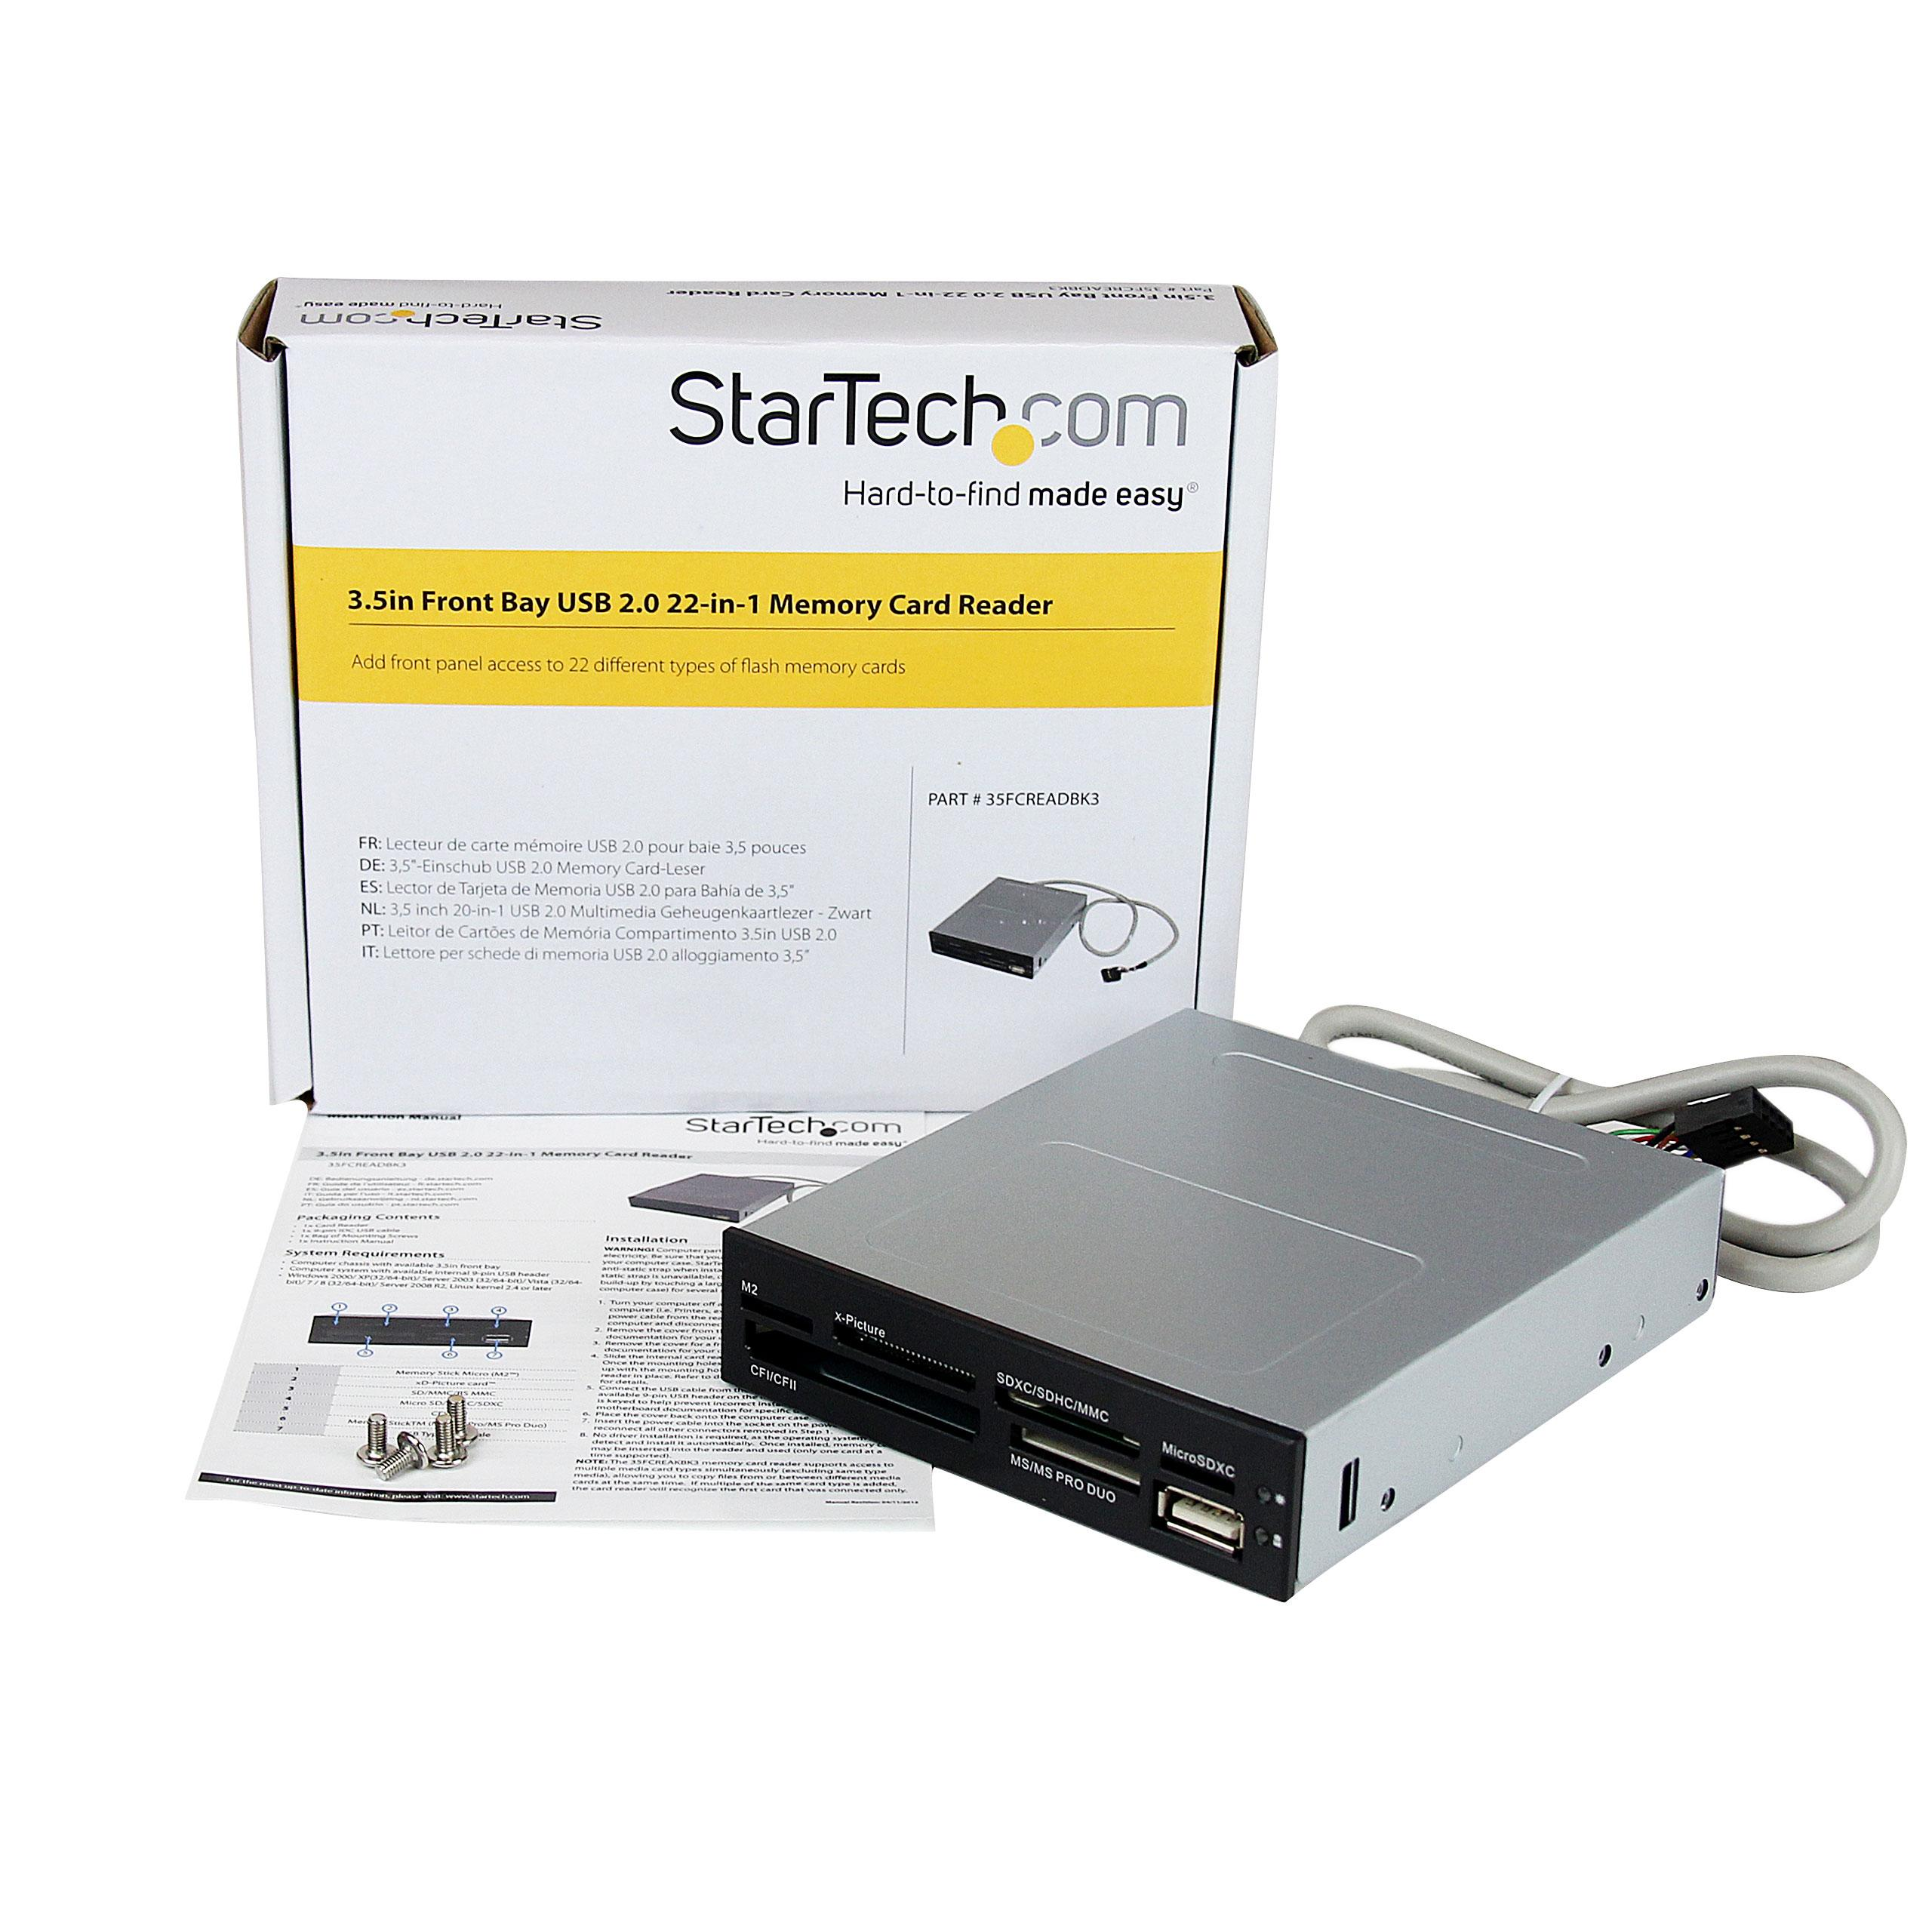 StarTech.com 3.5in Front Bay 22-in-1 USB 2.0 Internal Multi Media Memory Card Reader with Simultaneous Access - CF/SD/MMC/MS/xD - Black (35FCREADBK3)